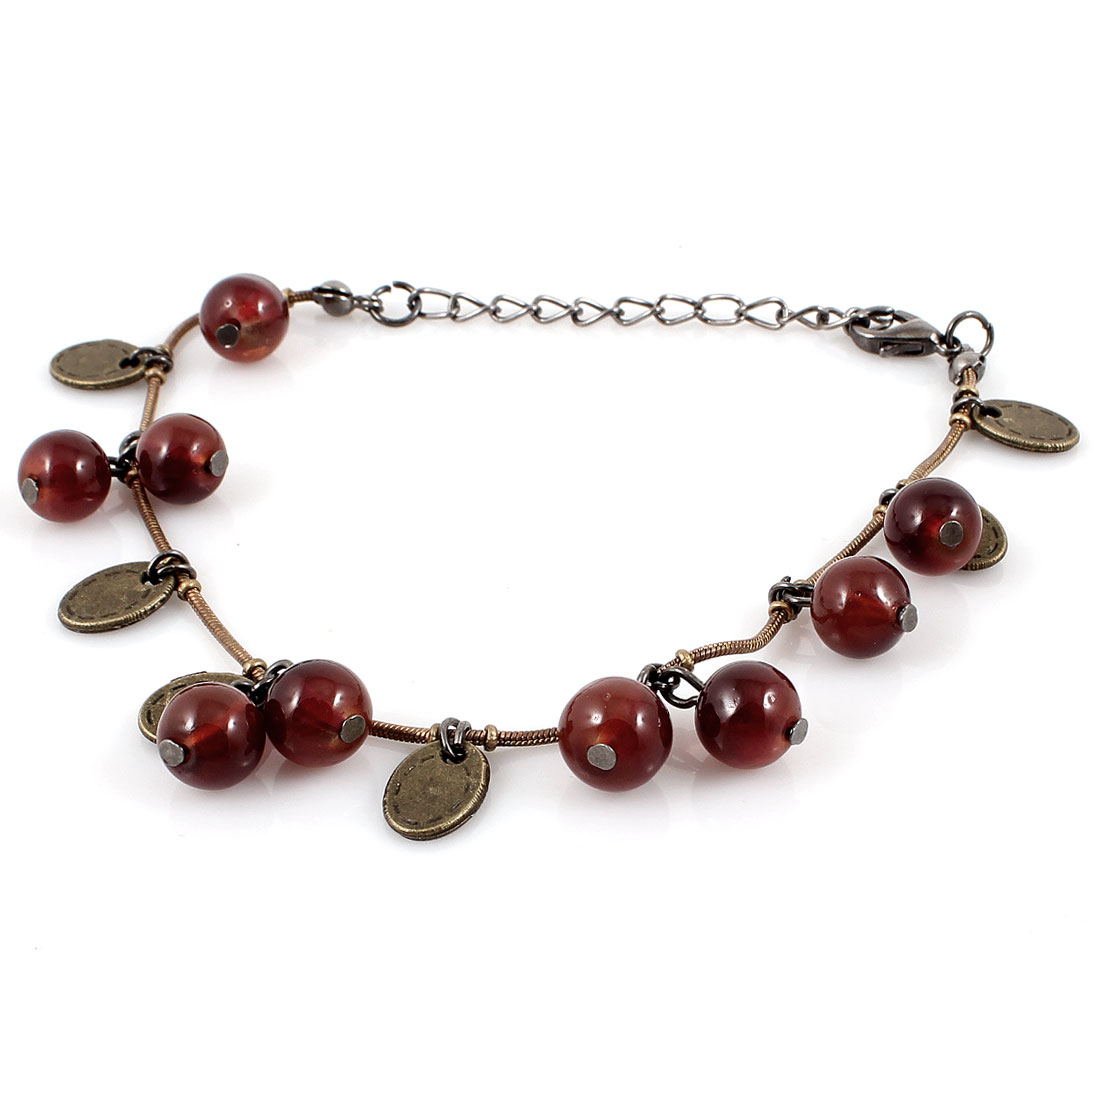 Winered Plastic Beads Lobster Clasp Closure Metal Chain Wrist Bracelet